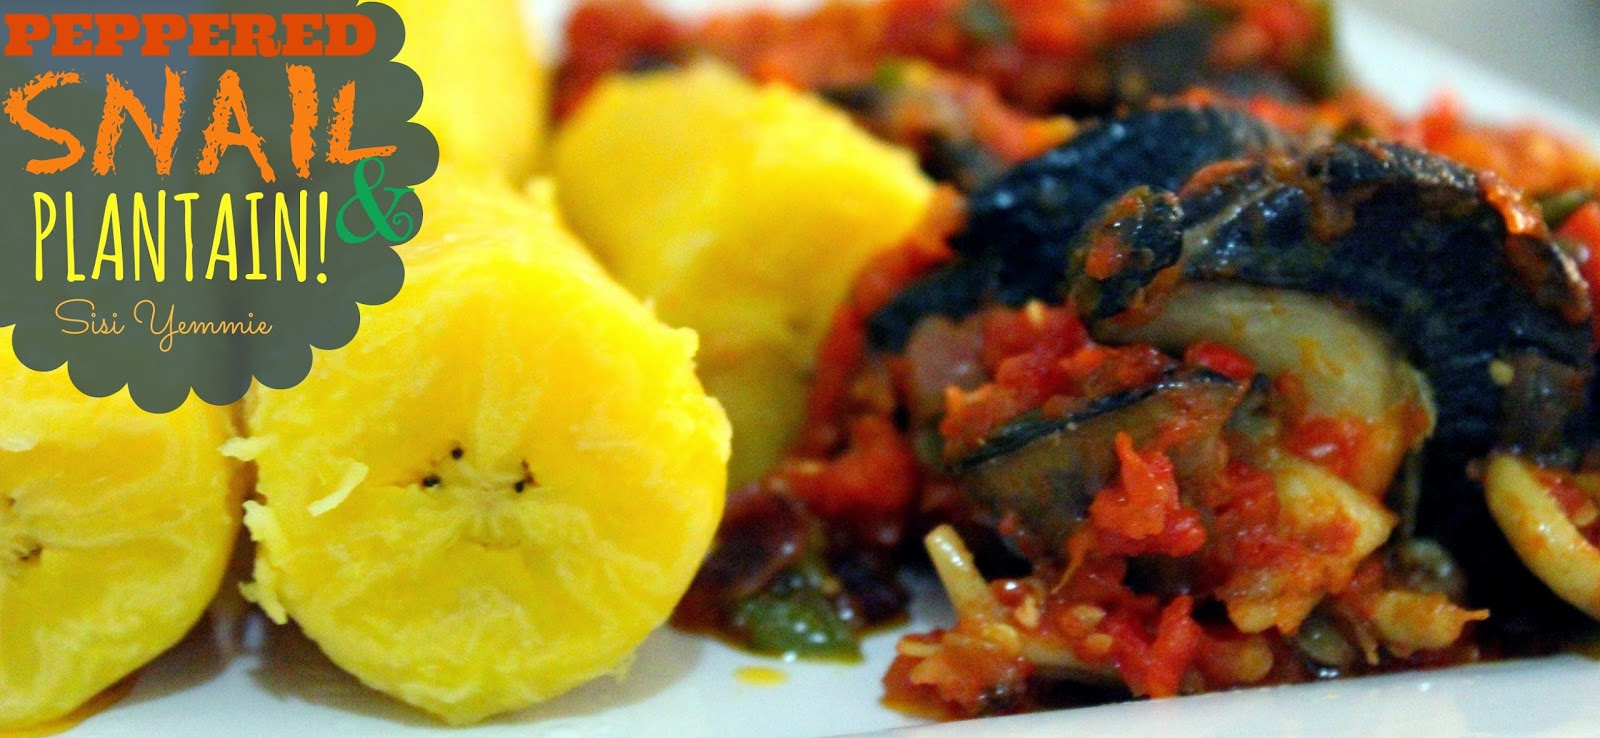 Recipe peppered snail boiled plantain sisiyemmie nigerian sisi yemmie blog forumfinder Images